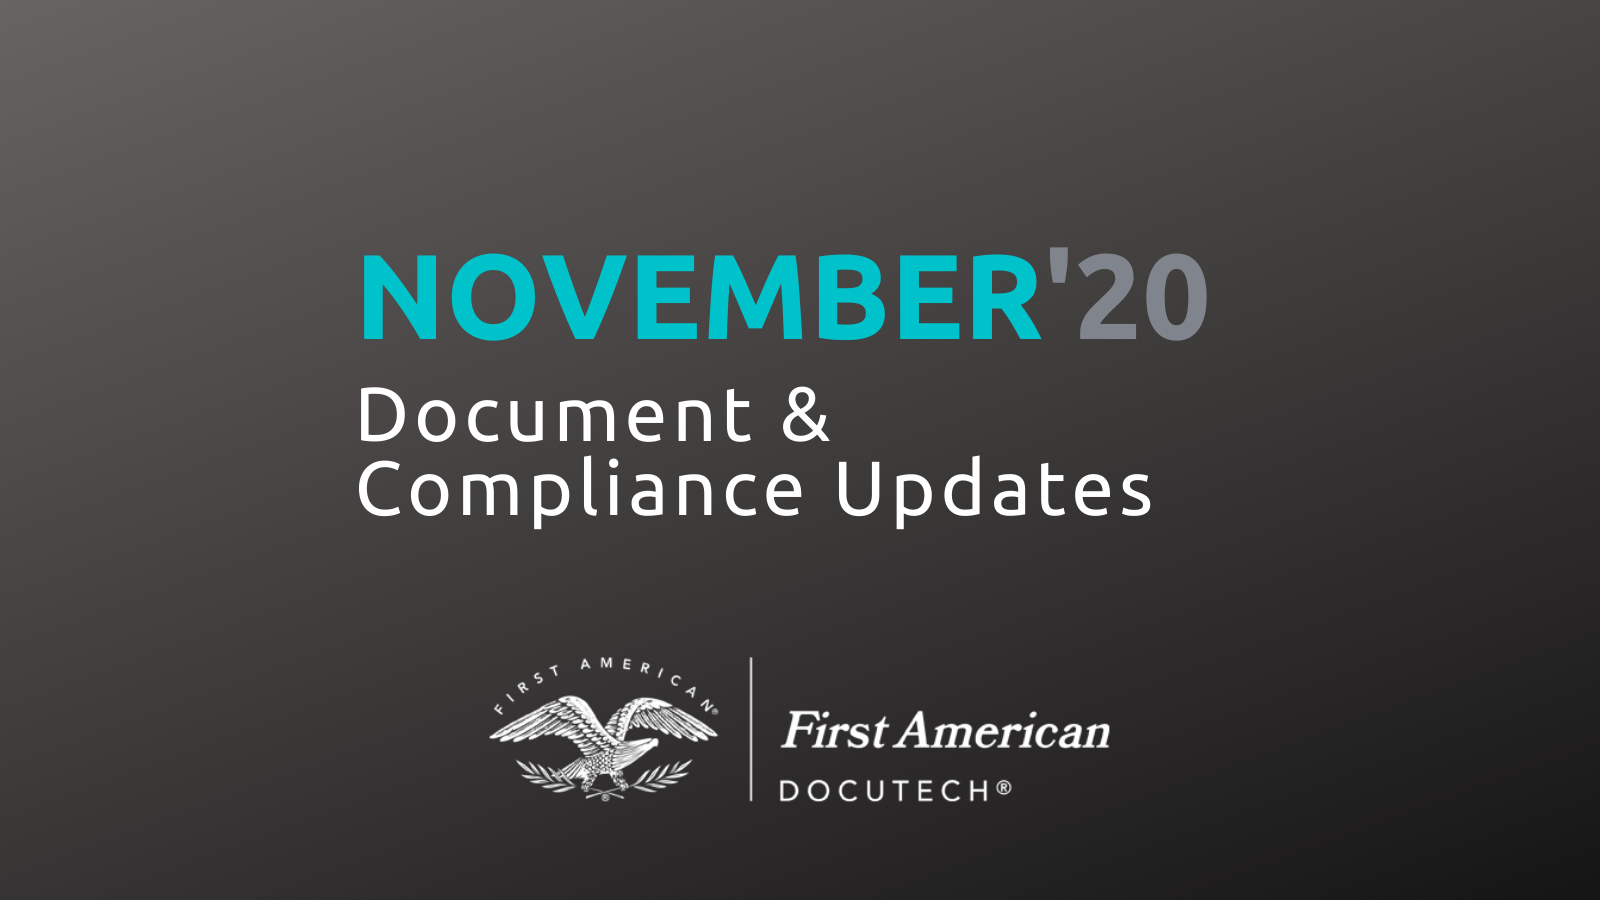 November '20 Document and Compliance Updates